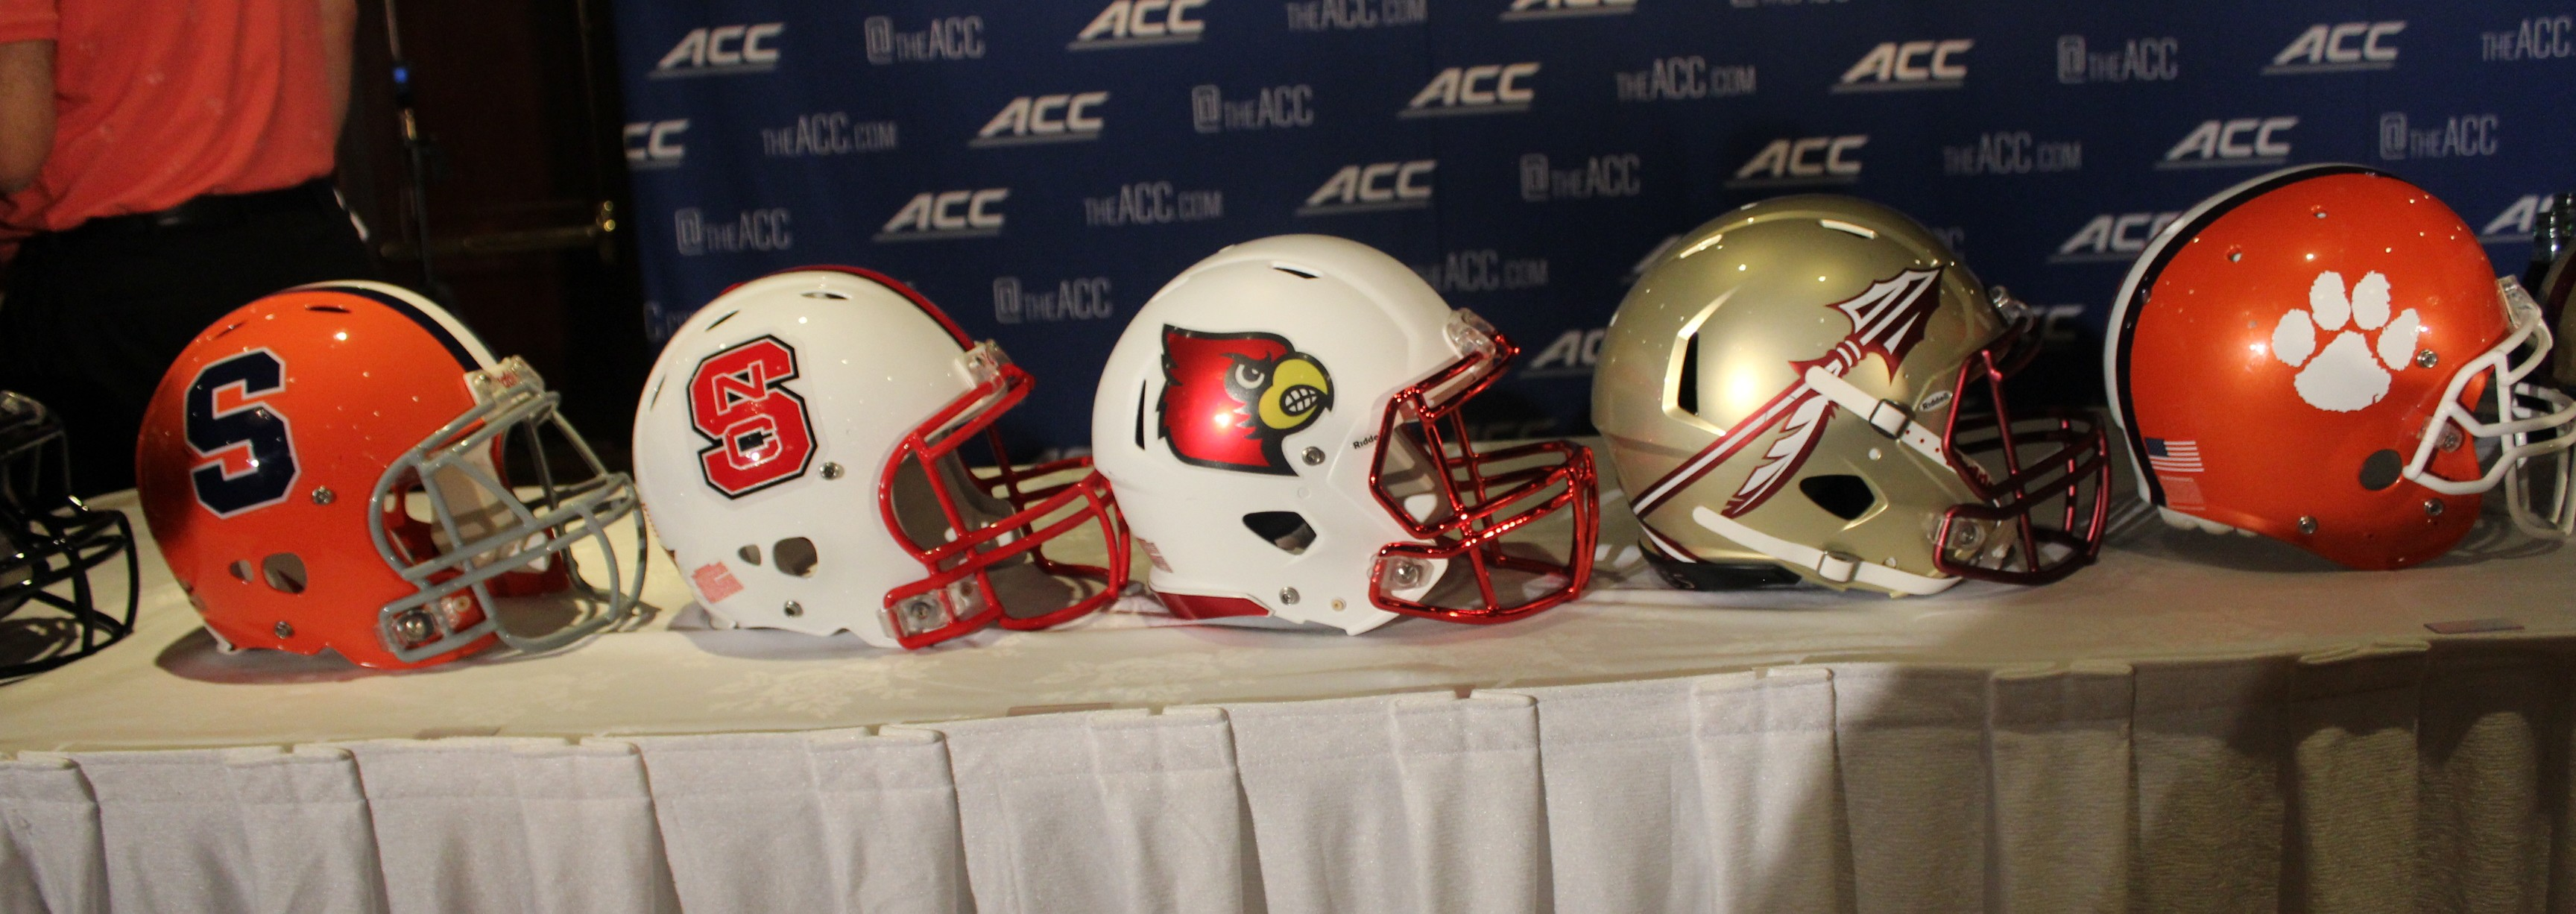 2014 ACC Kickoff Atlantic Division Helmets Fitted Photo by Mark Blankenbaker